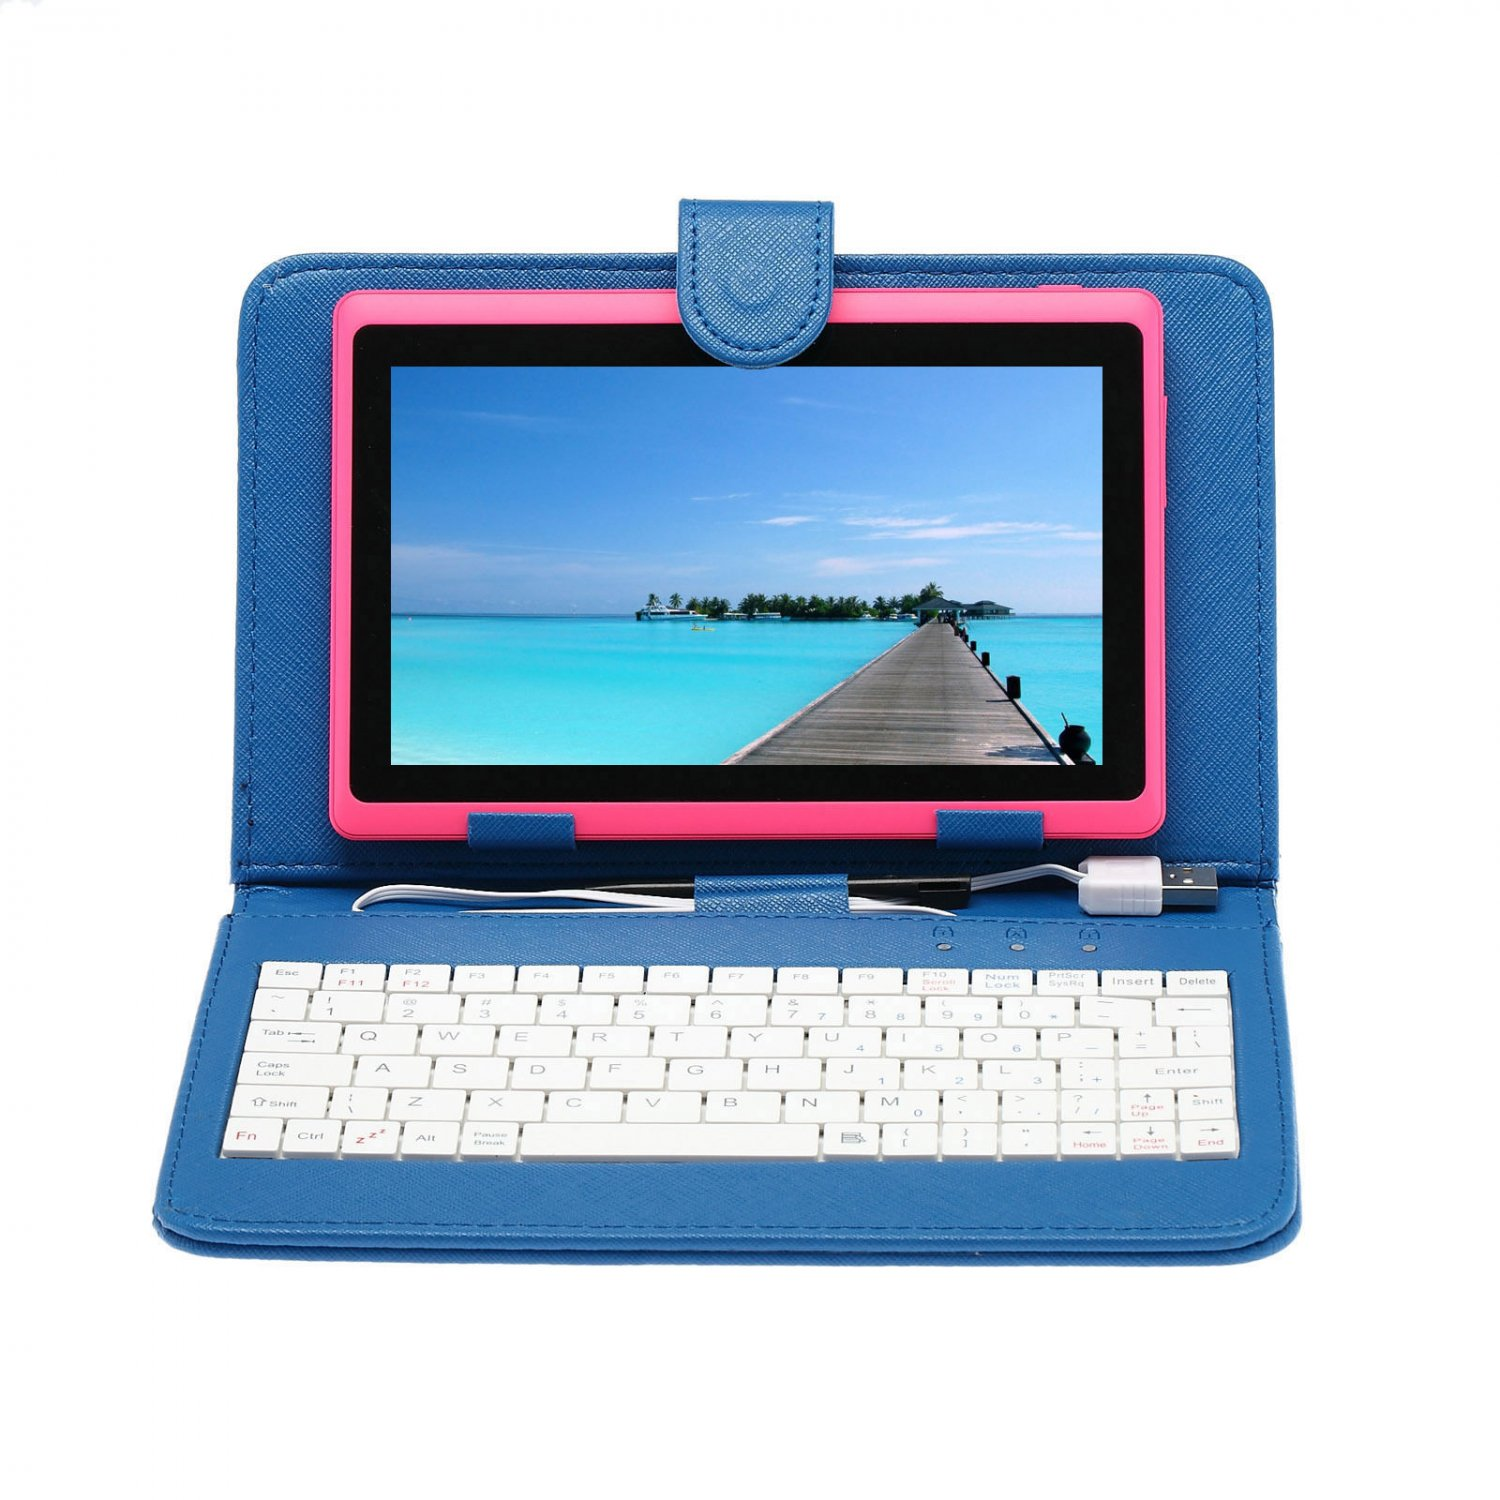 """IRULU eXpro X1 Pink 7"""" Tablet PC Android 4.2 Dual Core 8GB w/ Blue Keyboard"""